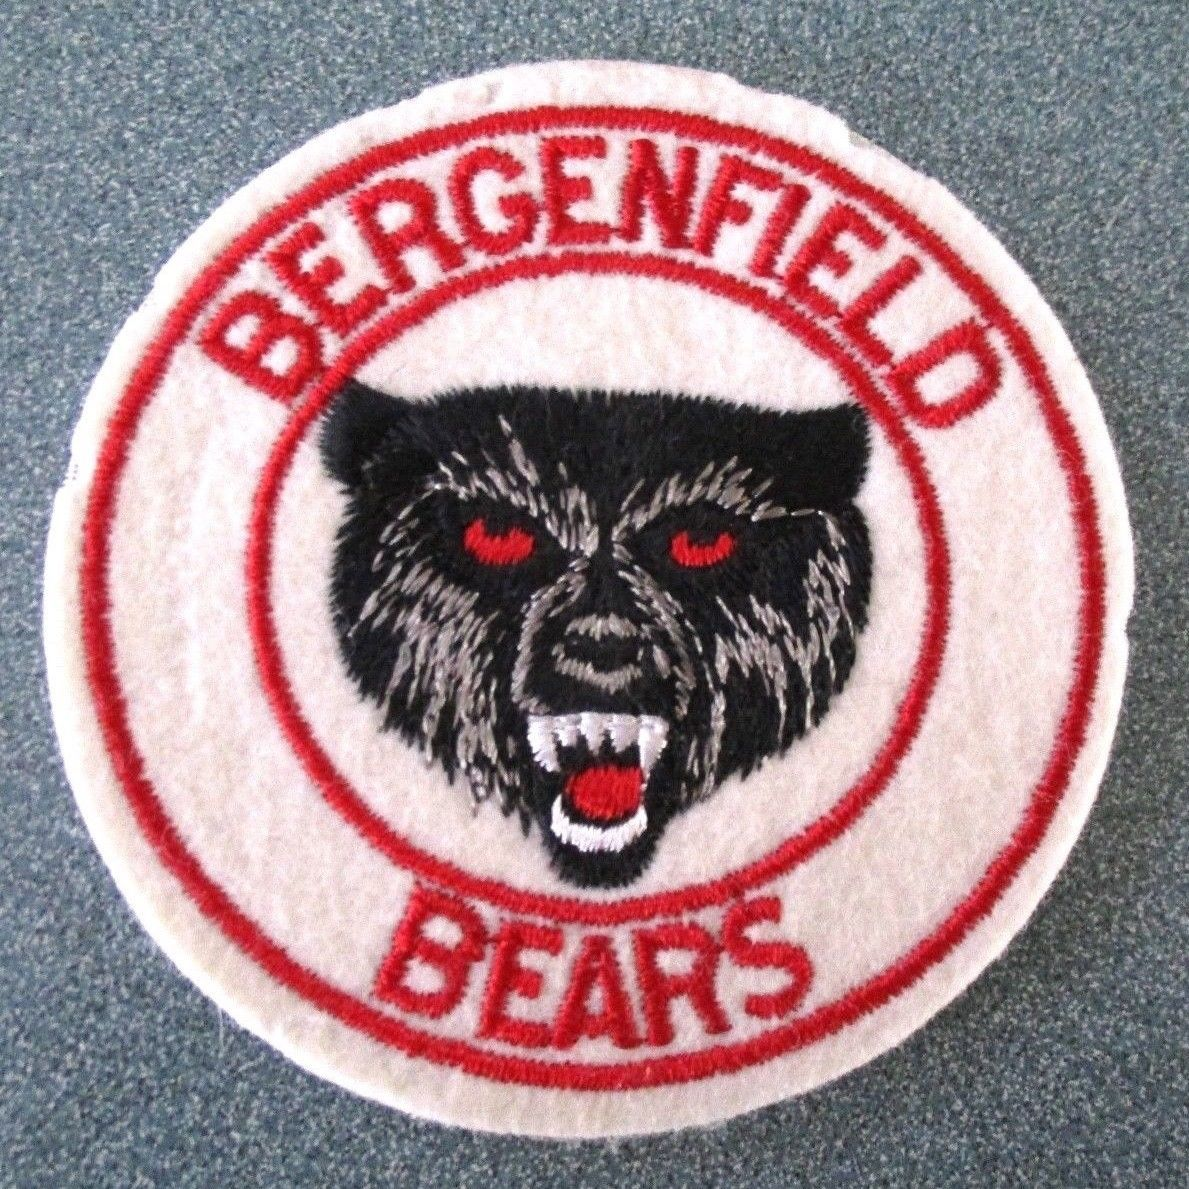 Vintage Bergenfield Bears NJ Patch 3.75""